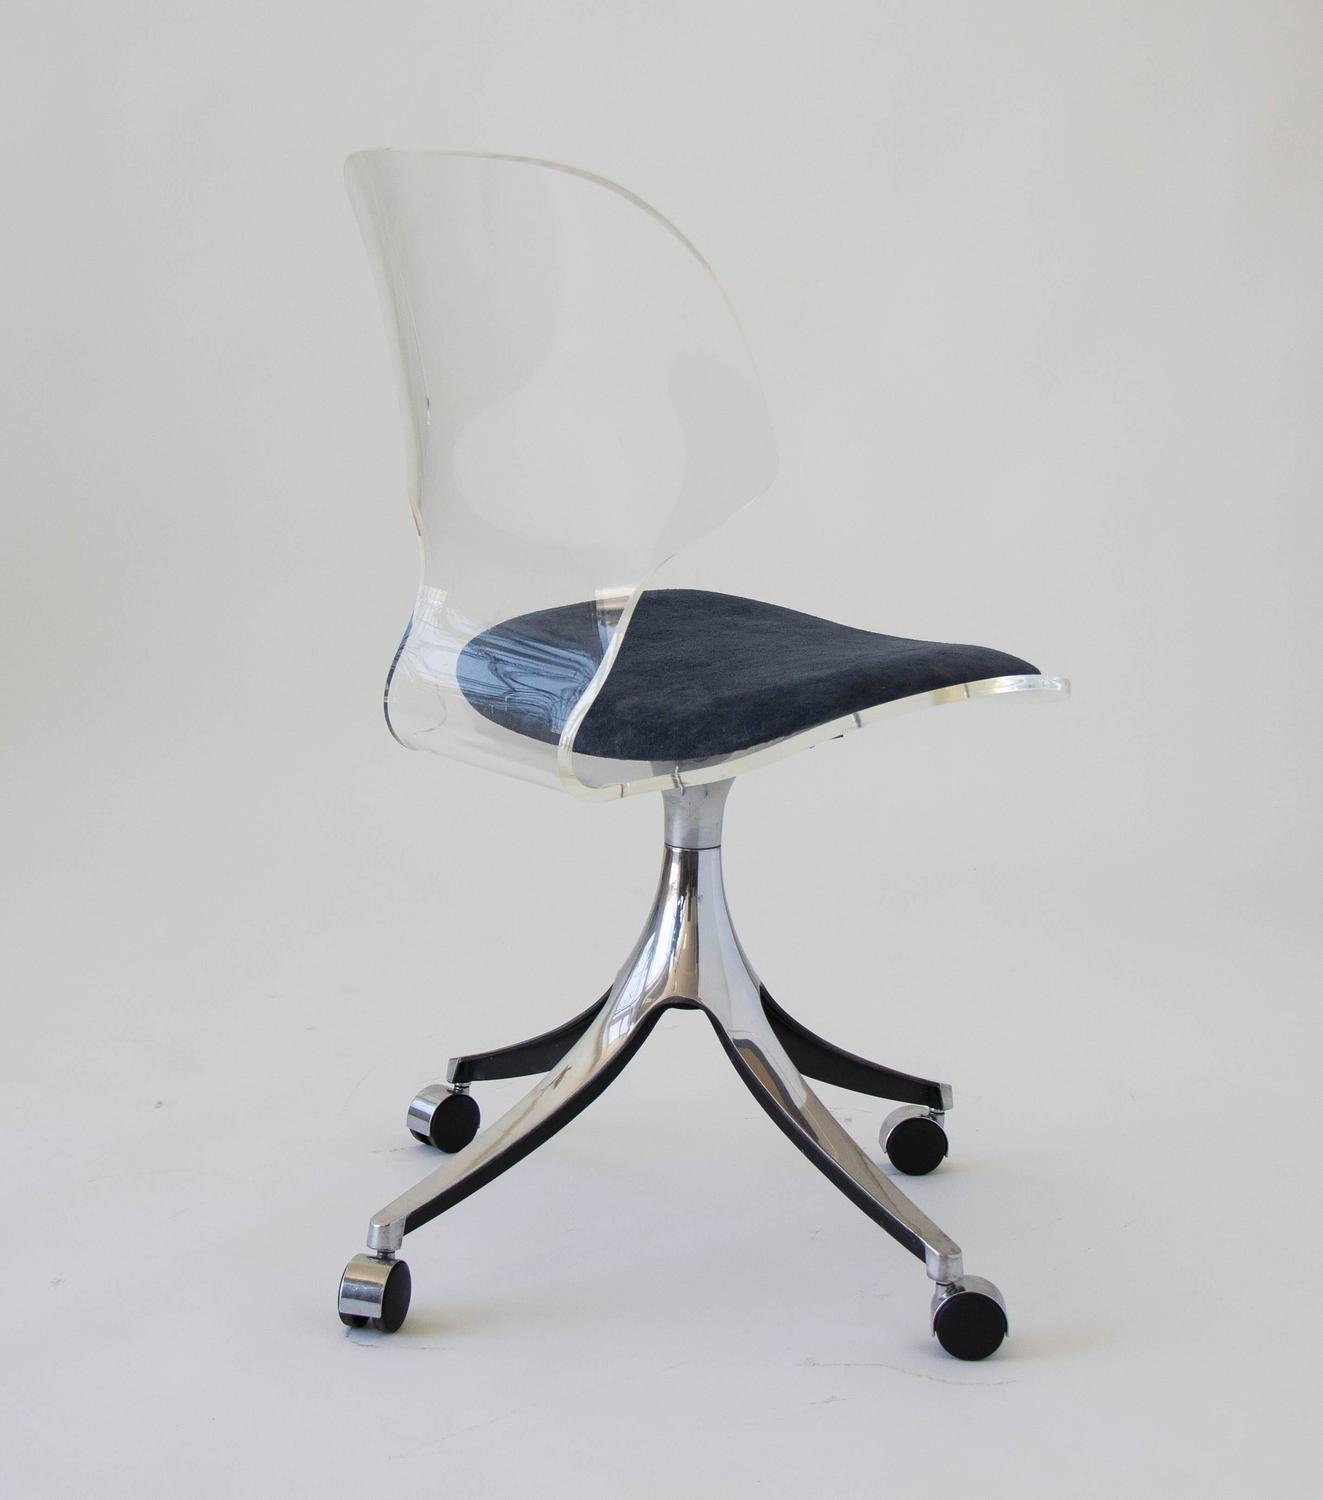 acrylic desk chair with cushion rifton toilet hill manufacturing co lucite rolling at 1stdibs